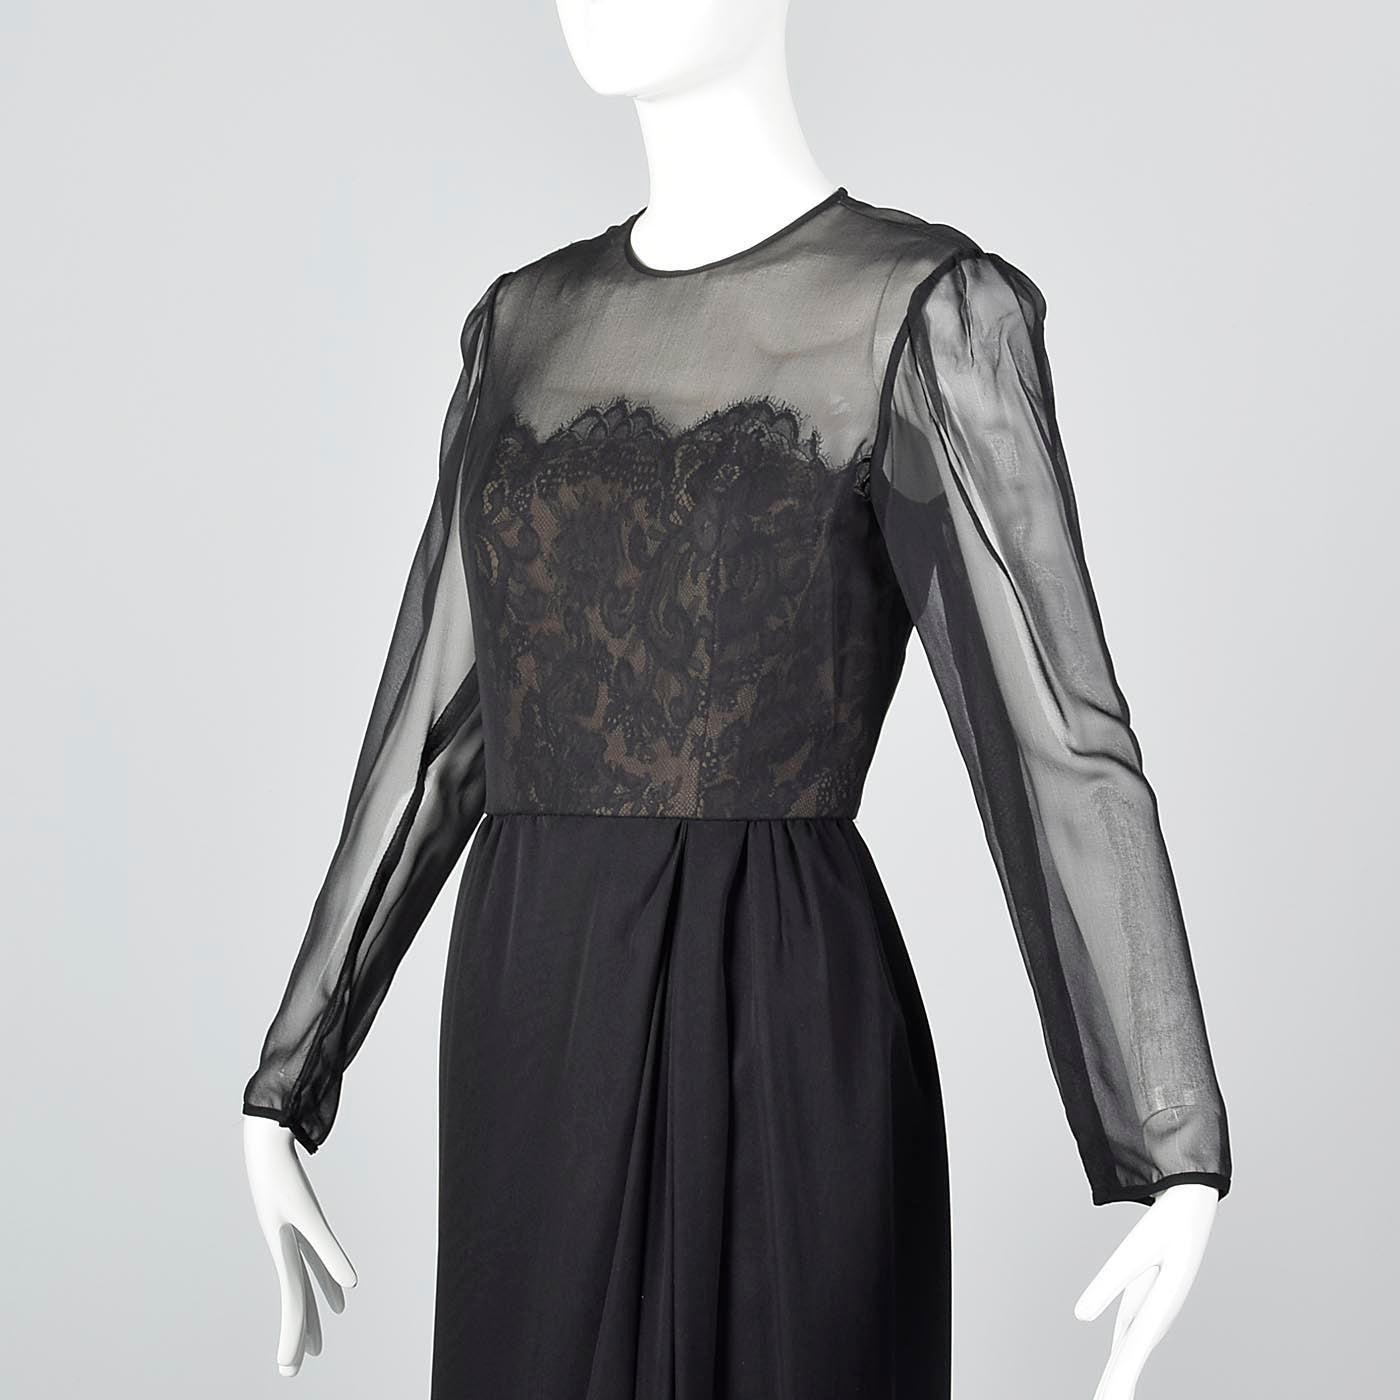 Michael Novarese Long Sleeve Black Evening Dress with Lace Illusion Bodice